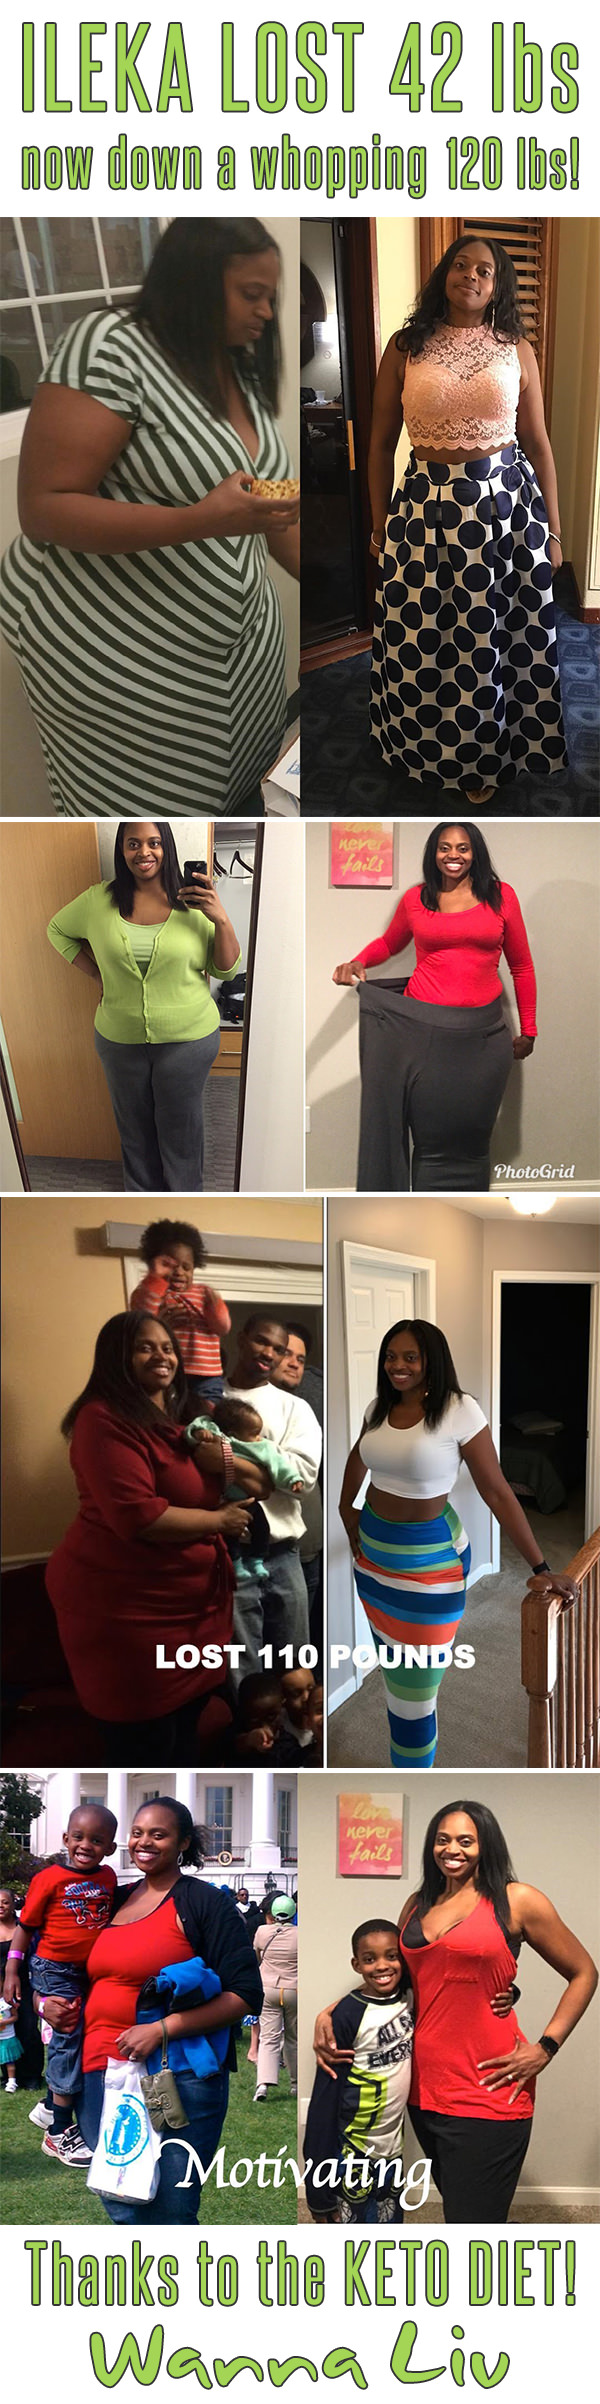 ILEKA LOST 42 lbs now down a whopping 120 lbs! Thanks to the KETO DIET! - Keto Success Stories #3 via Wanna Liv